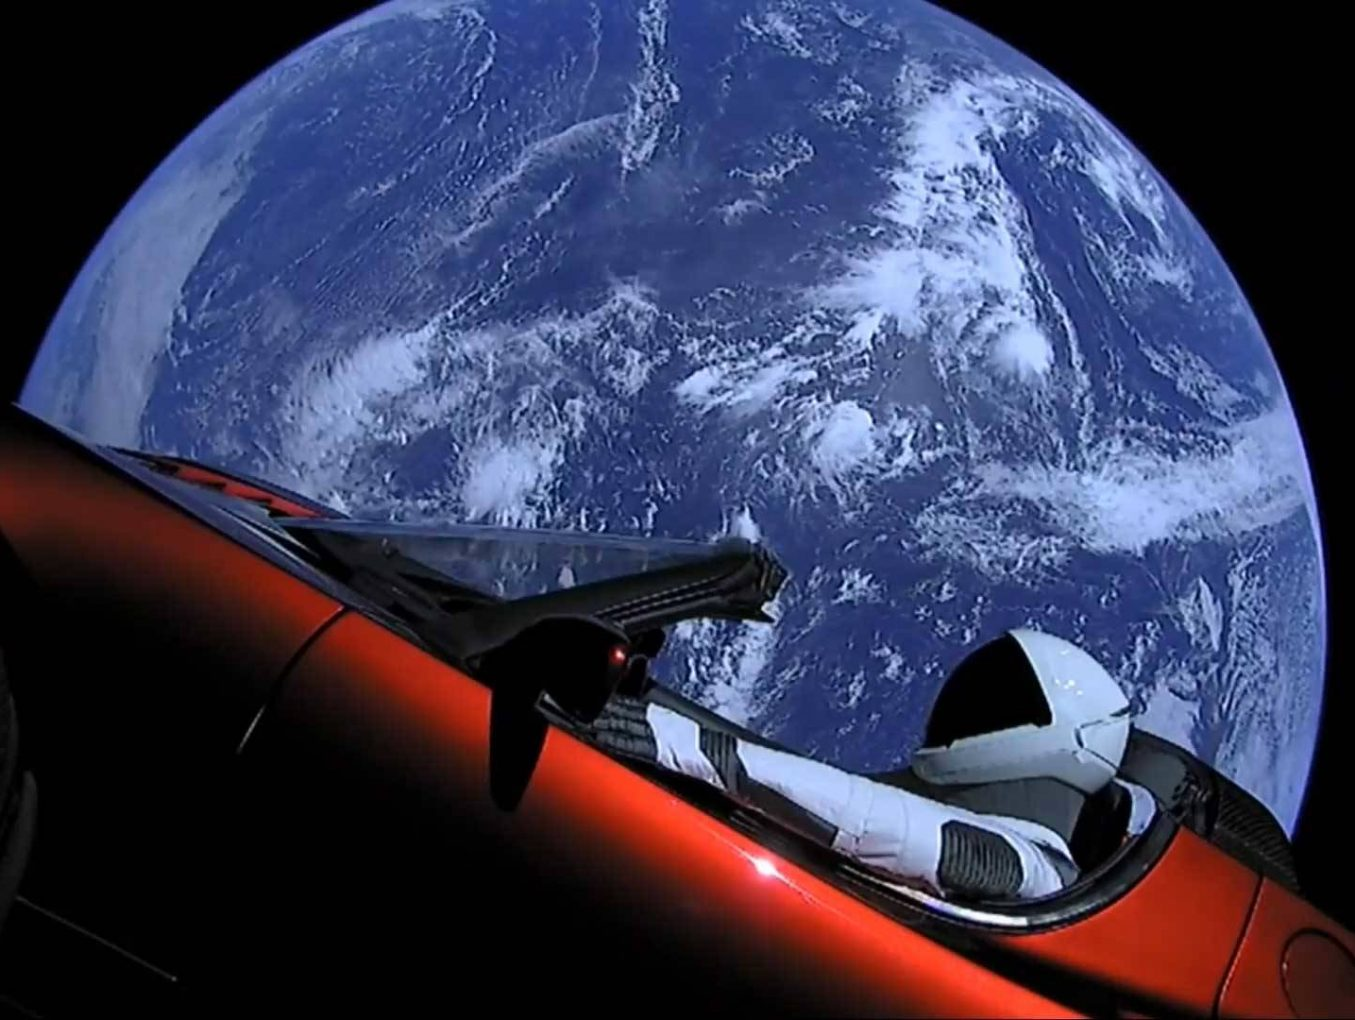 About a car in space & a blog